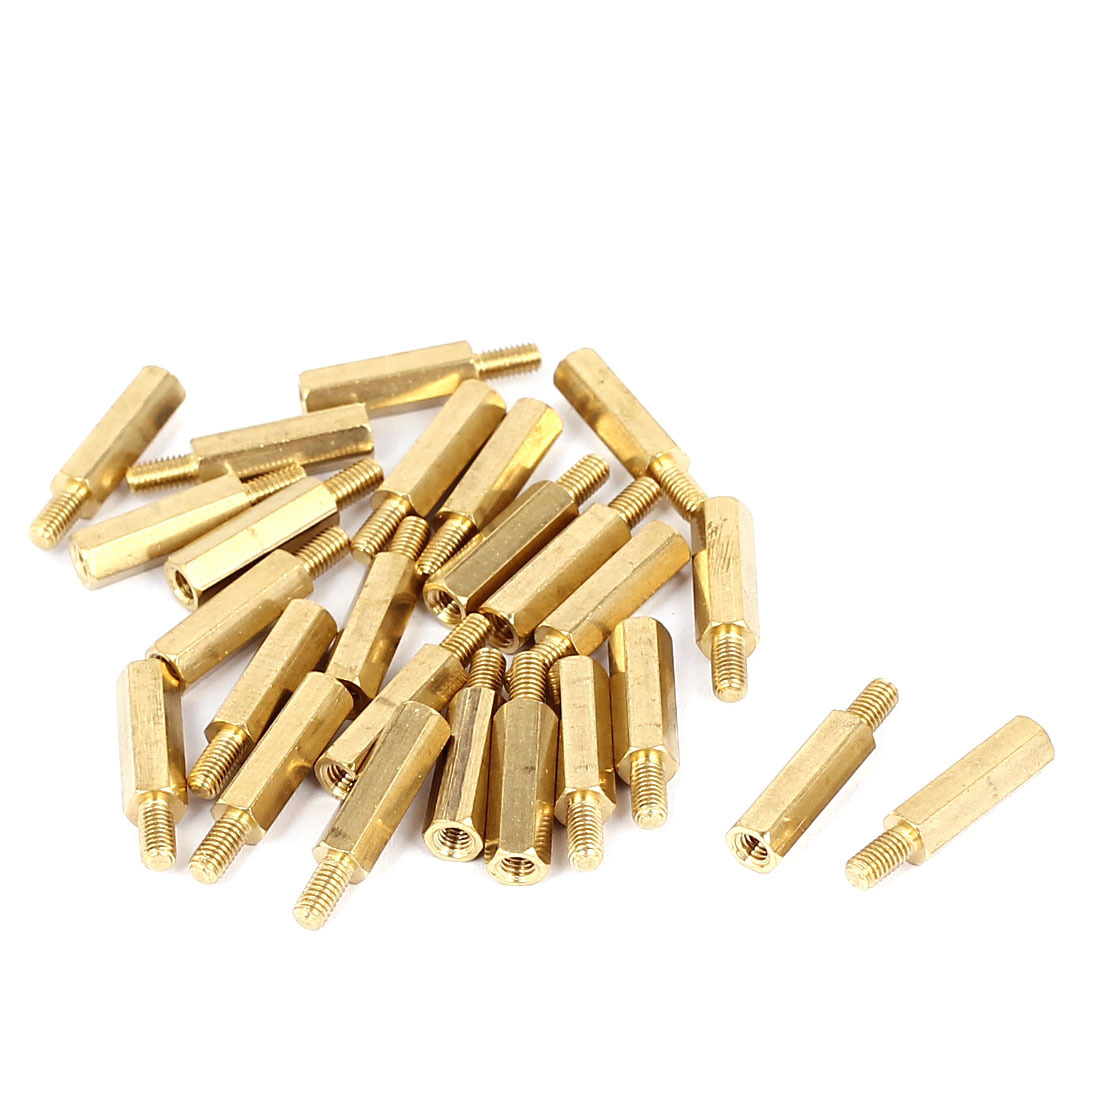 M3x15+6mm Female/Male Thread Brass Hex Standoff Pillar Spacer Coupler Nut 25pcs